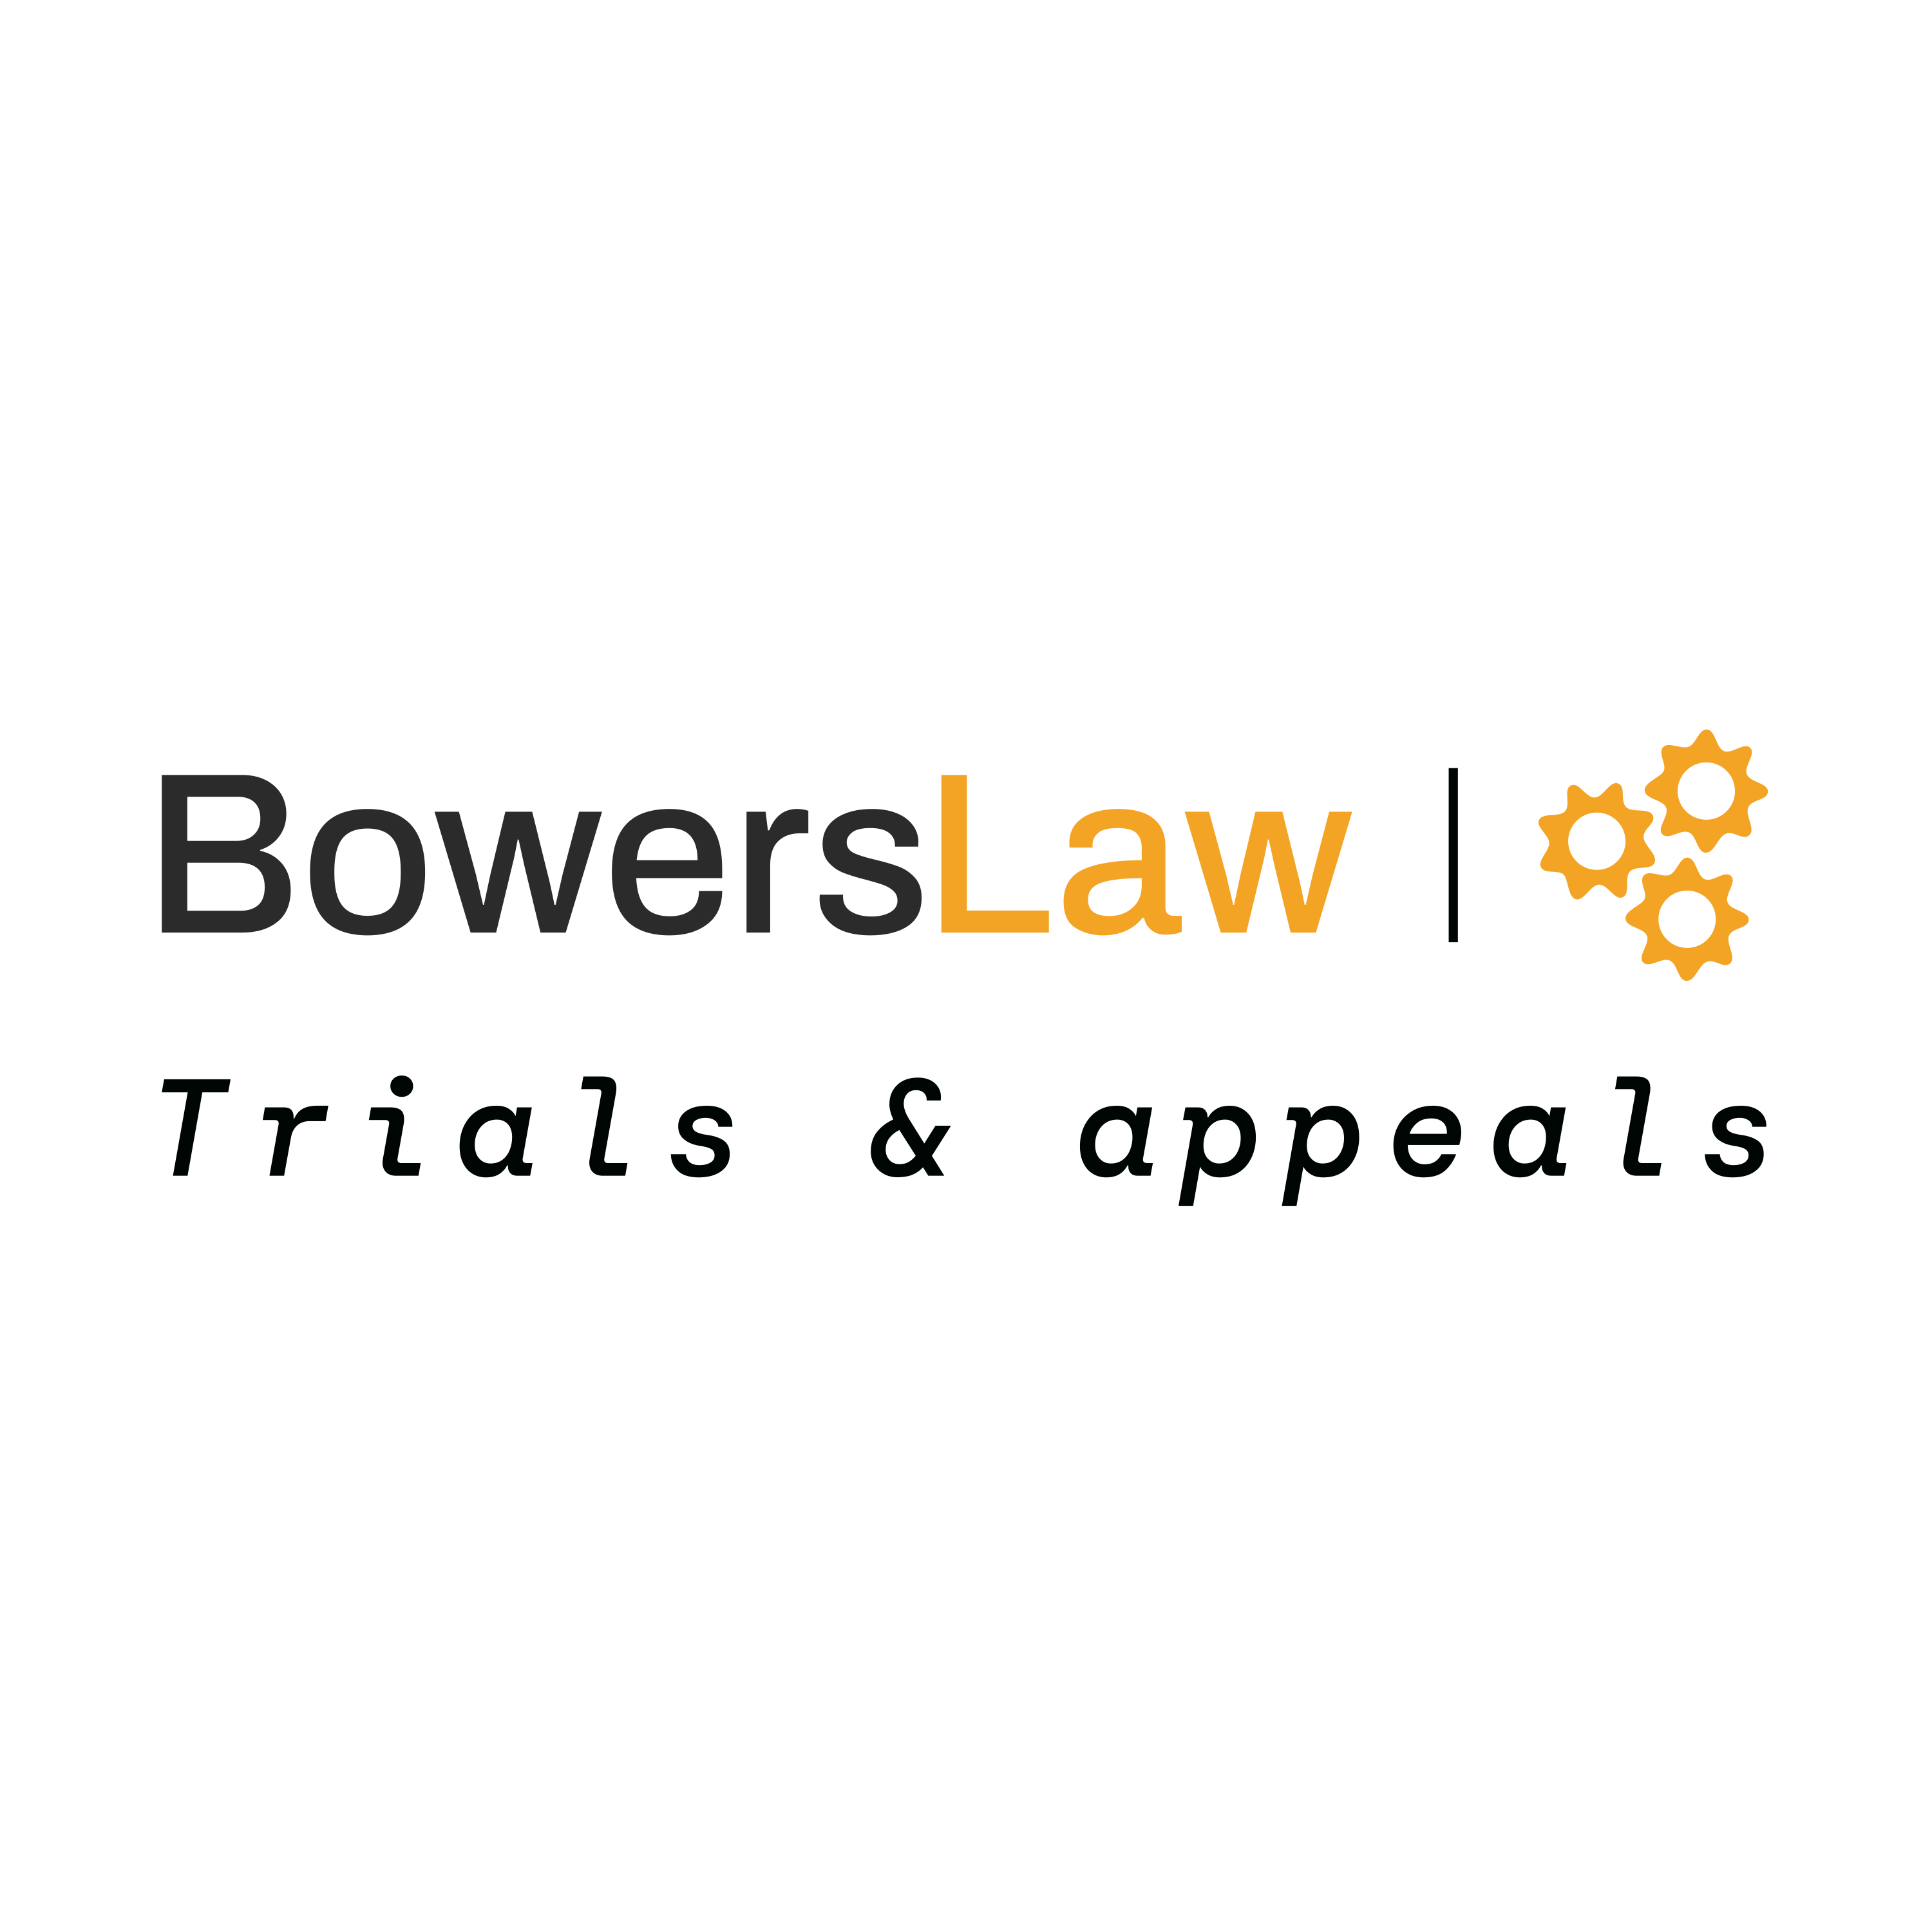 Bowers Law